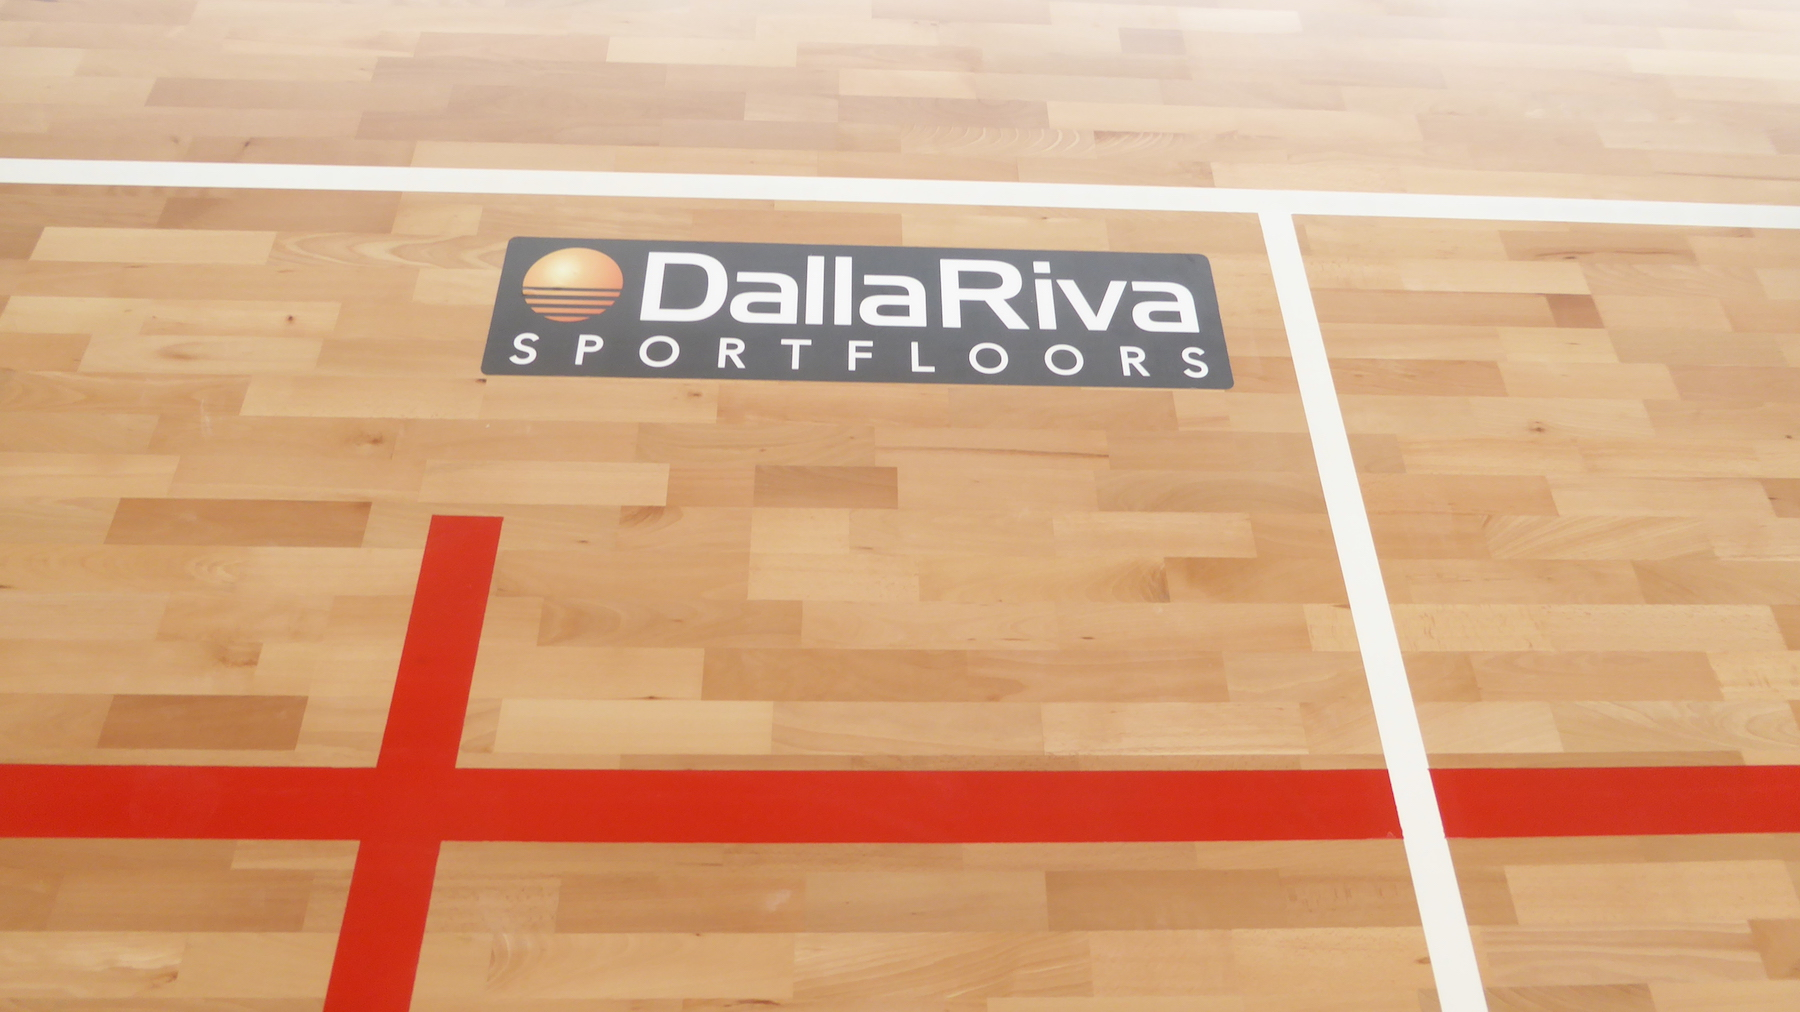 The emblem Dalla Riva Sportfloors on a black background